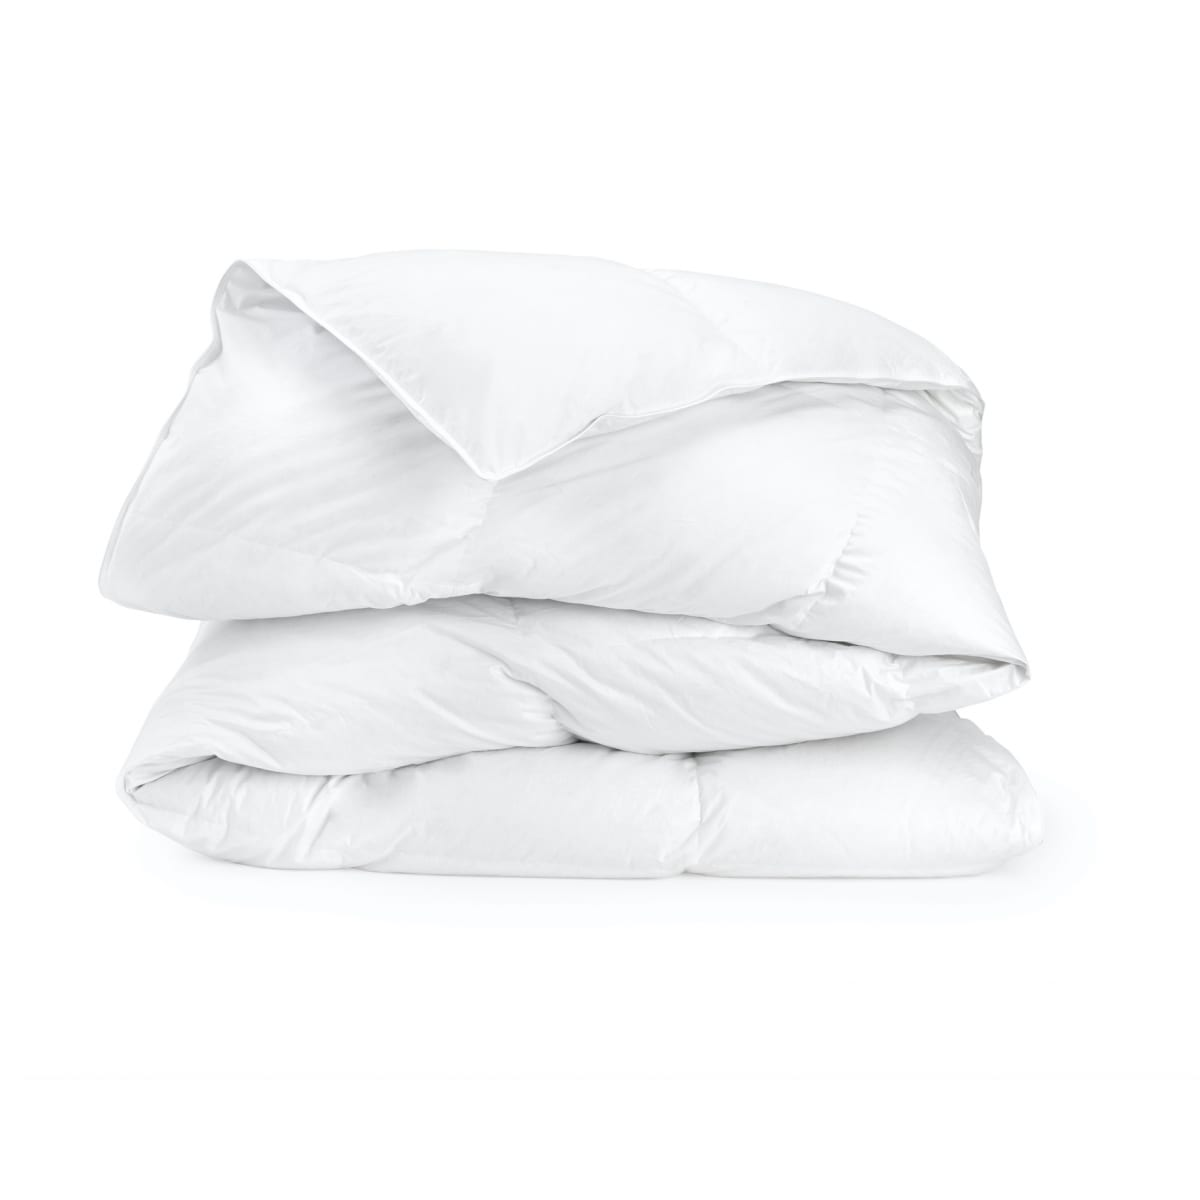 Couette Mixte Polyester & Percale Blanc 220x240cm